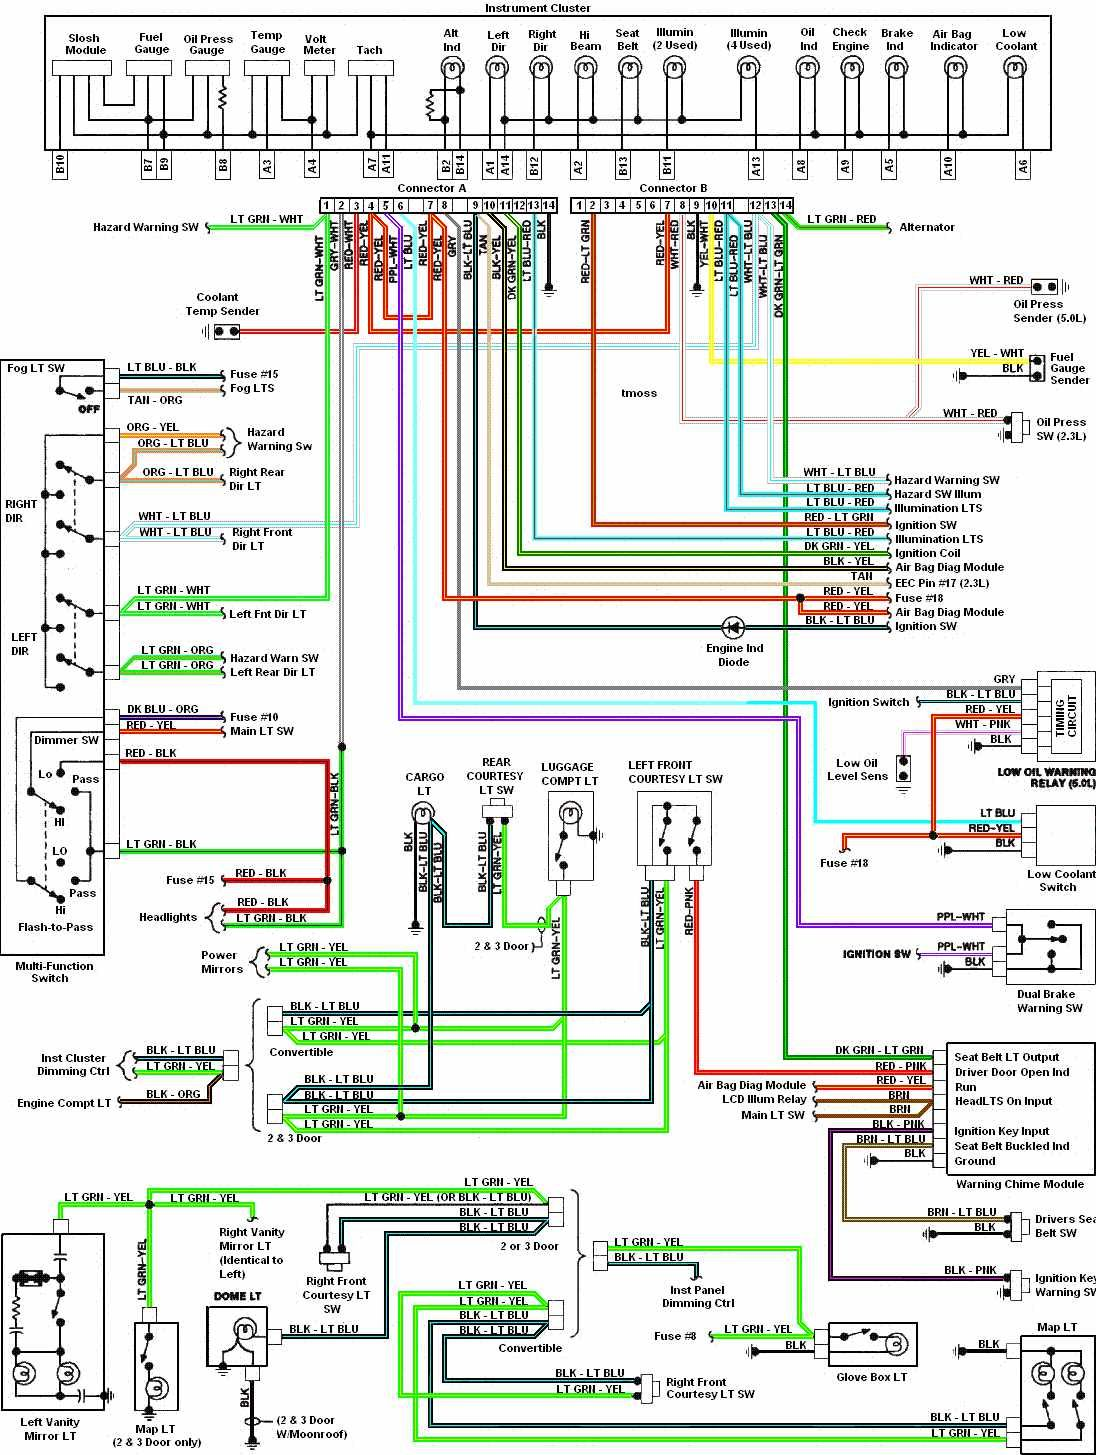 Mustang Wiring Schematic | Wiring Diagrams on fender bronco wiring diagram, stratocaster wiring diagram, fender toronado wiring diagram, jazzmaster wiring diagram, fender s1 switch wiring diagram, tobias wiring diagram, fender deluxe wiring diagram, starcaster by fender wiring diagram, fender squier wiring-diagram, fender tbx tone control wiring diagram, fender duo-sonic wiring-diagram, fender esquire wiring-diagram, fender blues junior wiring diagram, fender musicmaster wiring diagram, 5-way strat switch wiring diagram, fender cabronita wiring diagram, fender p bass diagram, fender marauder wiring diagram, fender telecaster wiring diagram, fender jagstang wiring diagram,